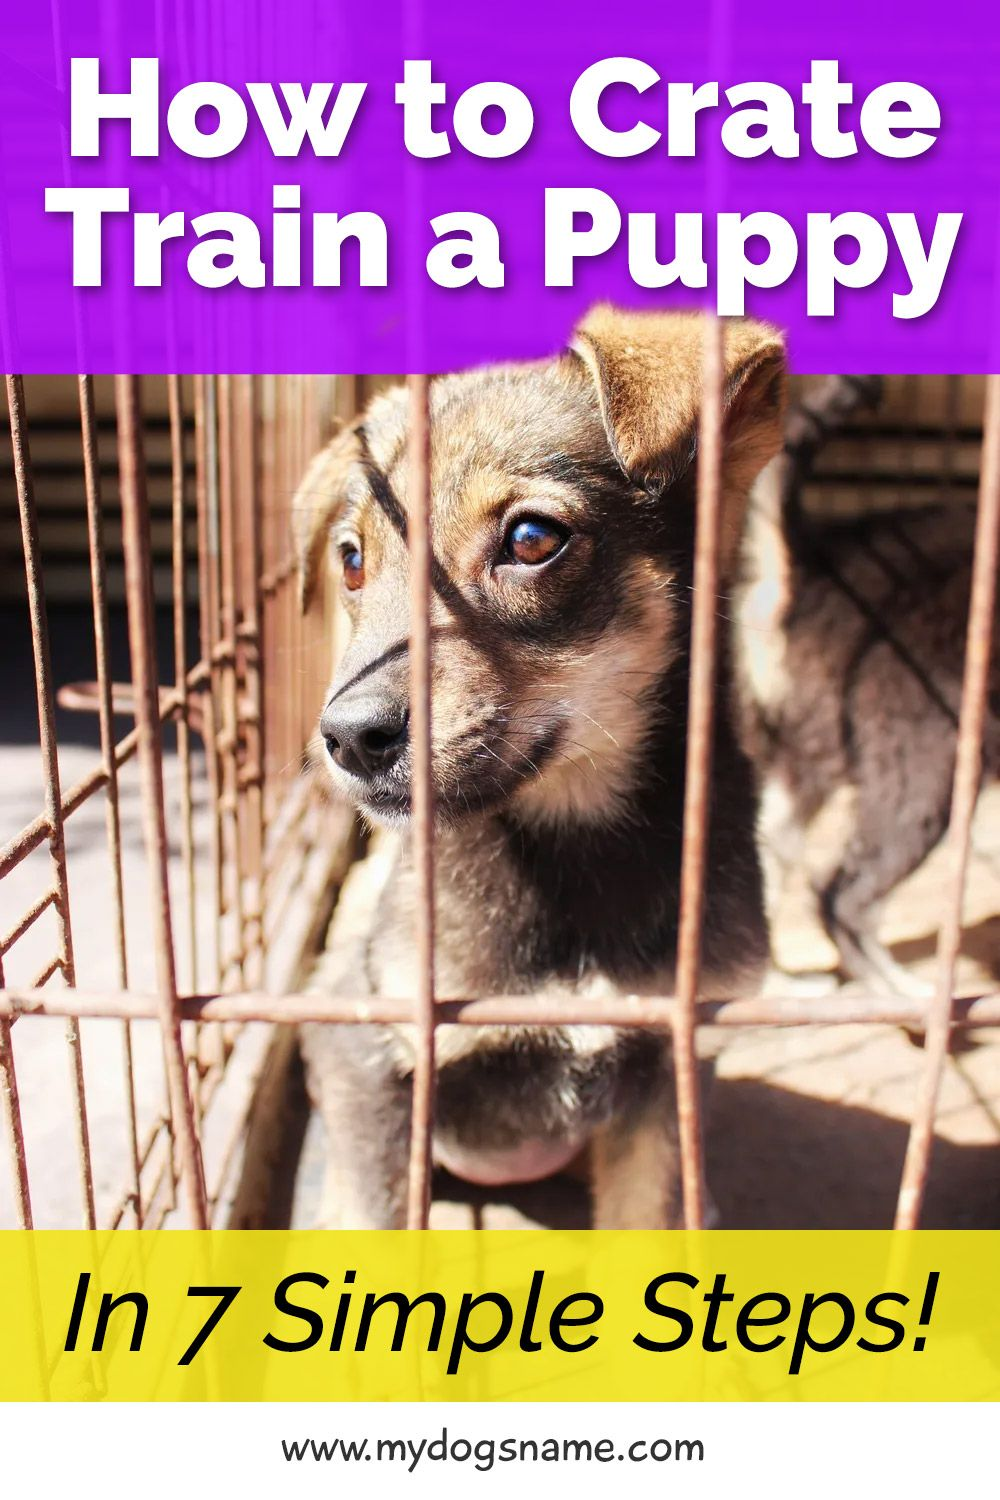 How To Crate Train A Puppy In 7 Simple Steps My Dog S Name Puppy Training Crate Training Puppy Crate Training Dog